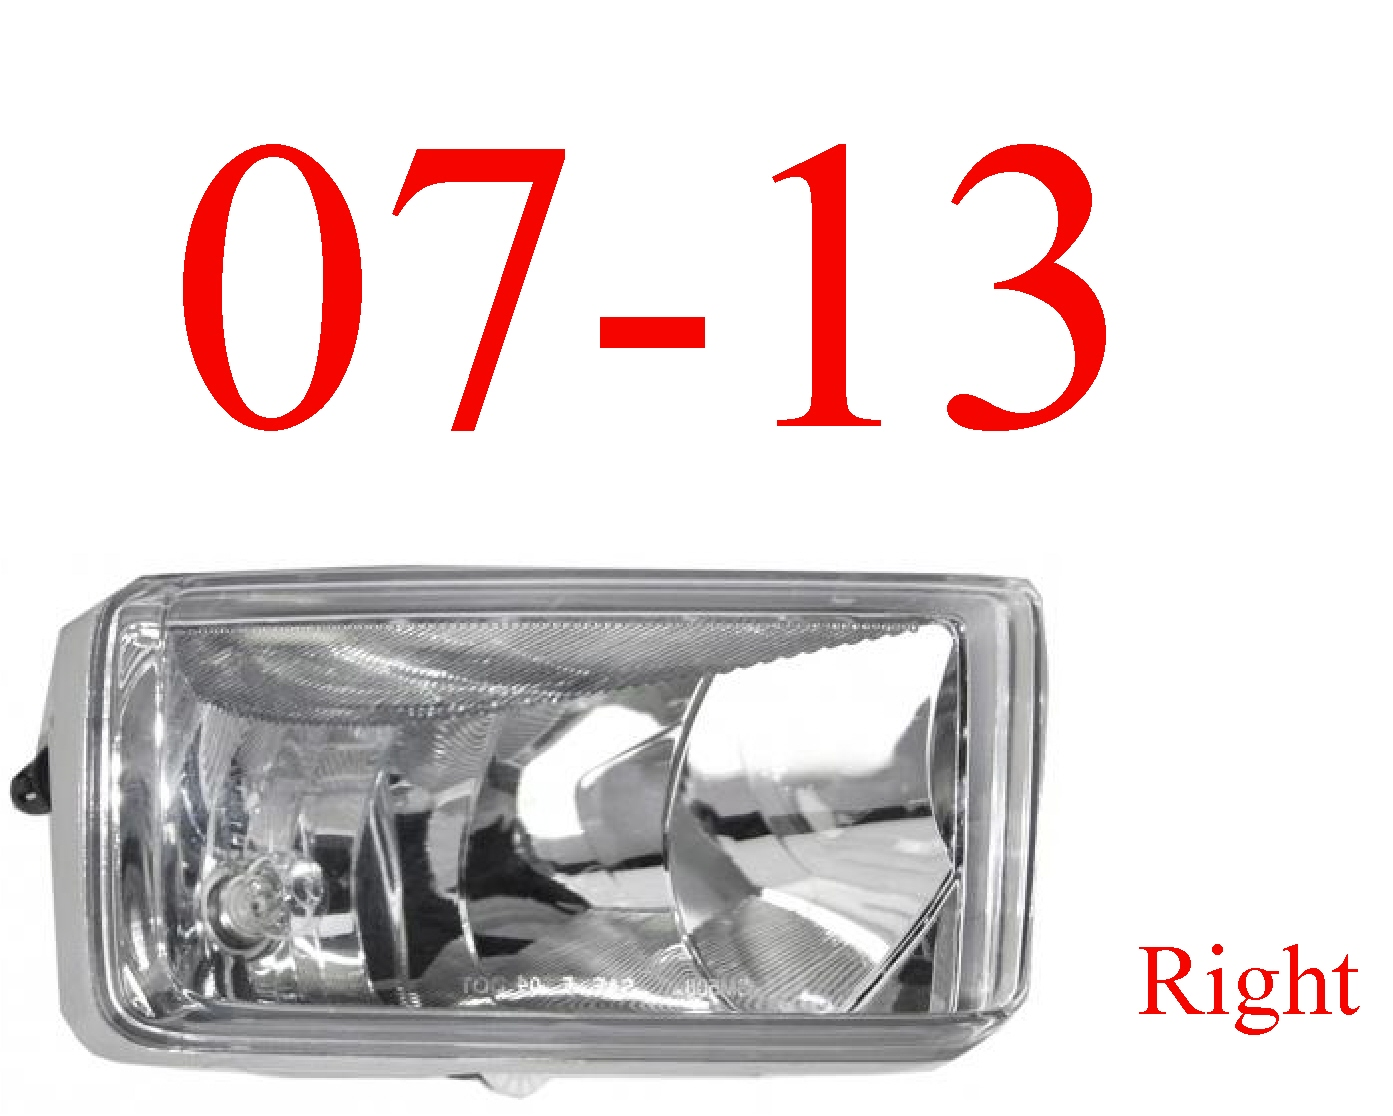 07-13 Chevy Right Fog Light Assembly